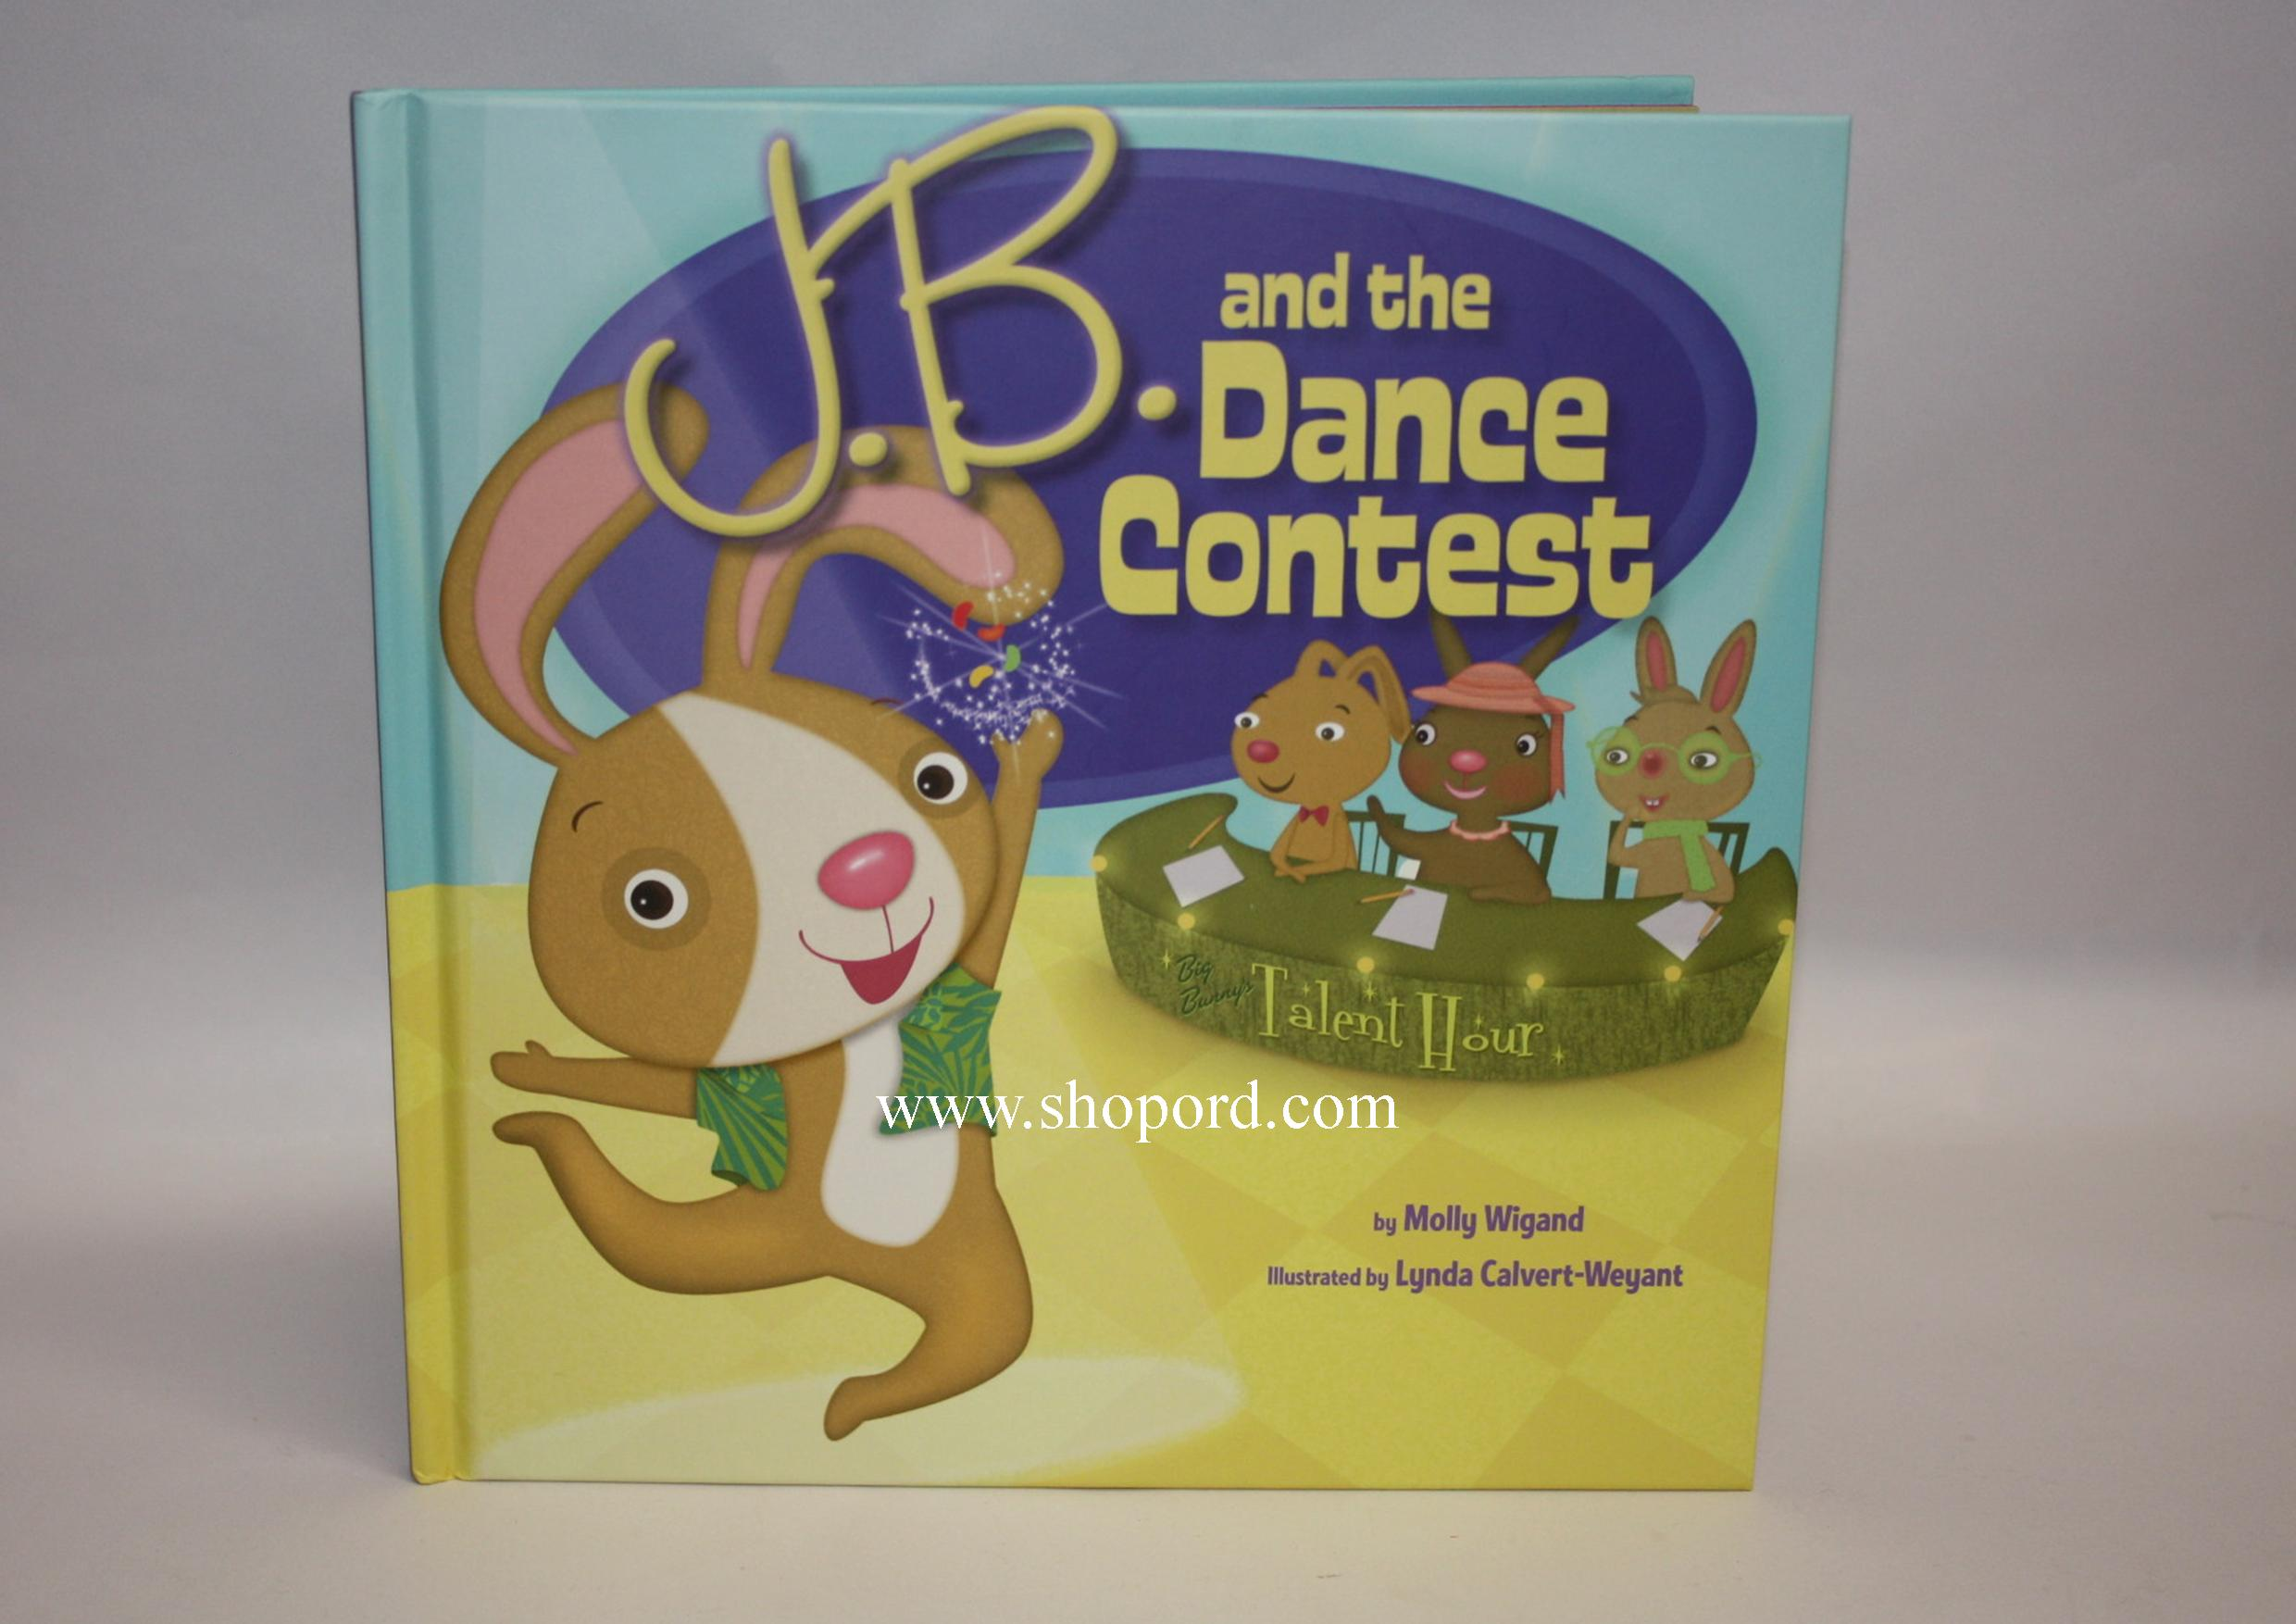 Hallmark Easter Book Jelly Bean Bunny (J.B.) and the Dance Contest Hardcover Book EWM3079